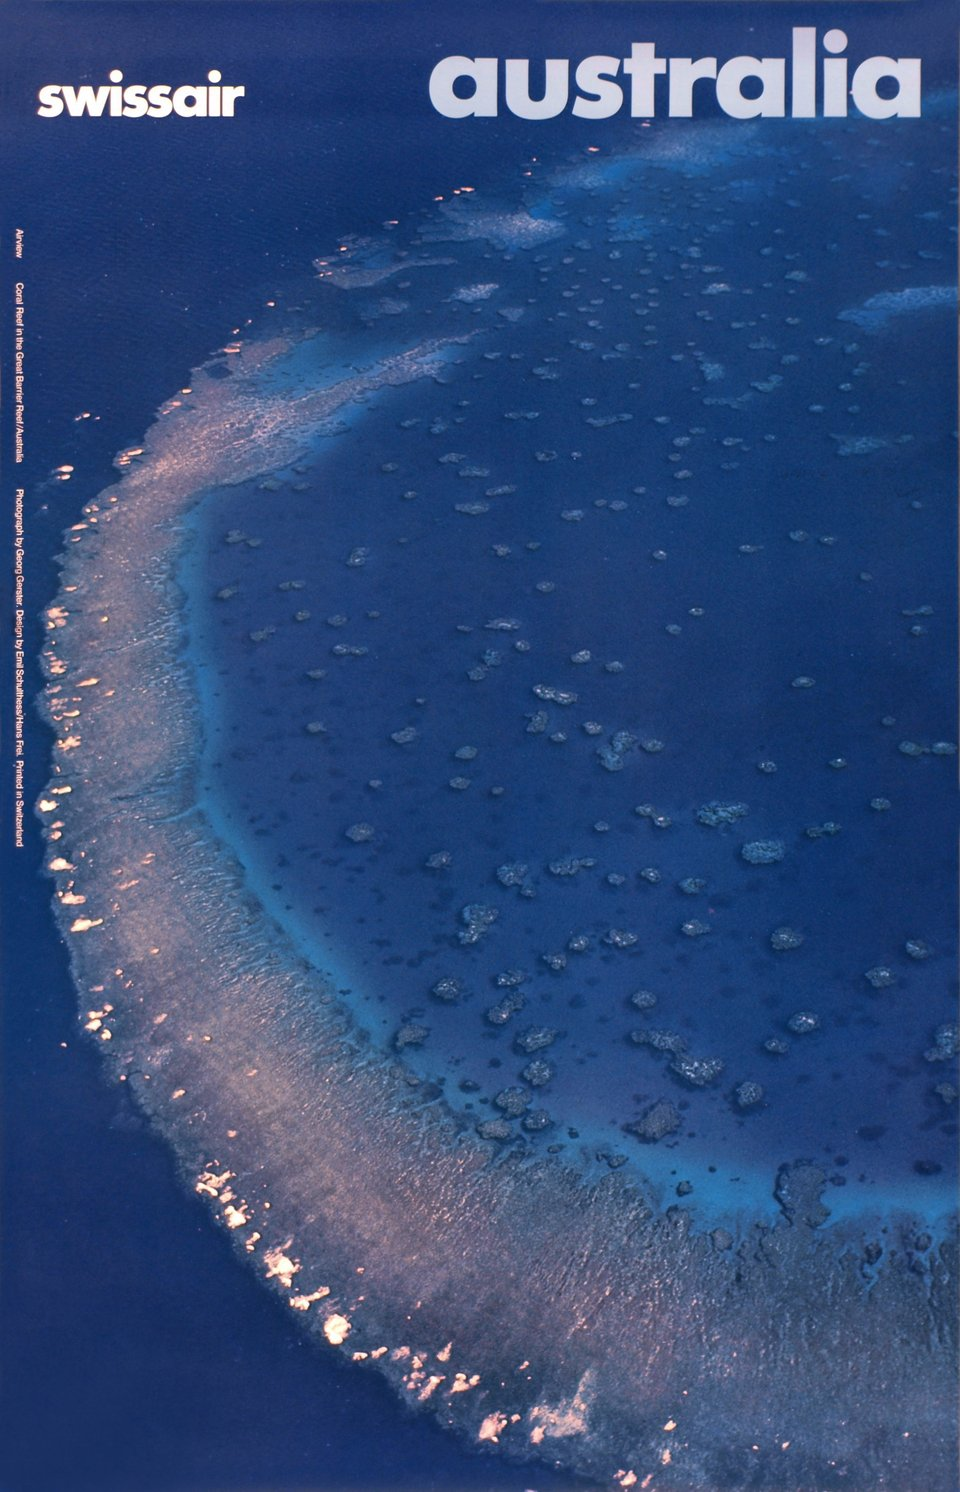 Swissair, Australia, Coral Reff in the Great Barrier Reef – Vintage poster – Hans FREI, Georg GERSTER, Emil SCHULTHESS – 1979